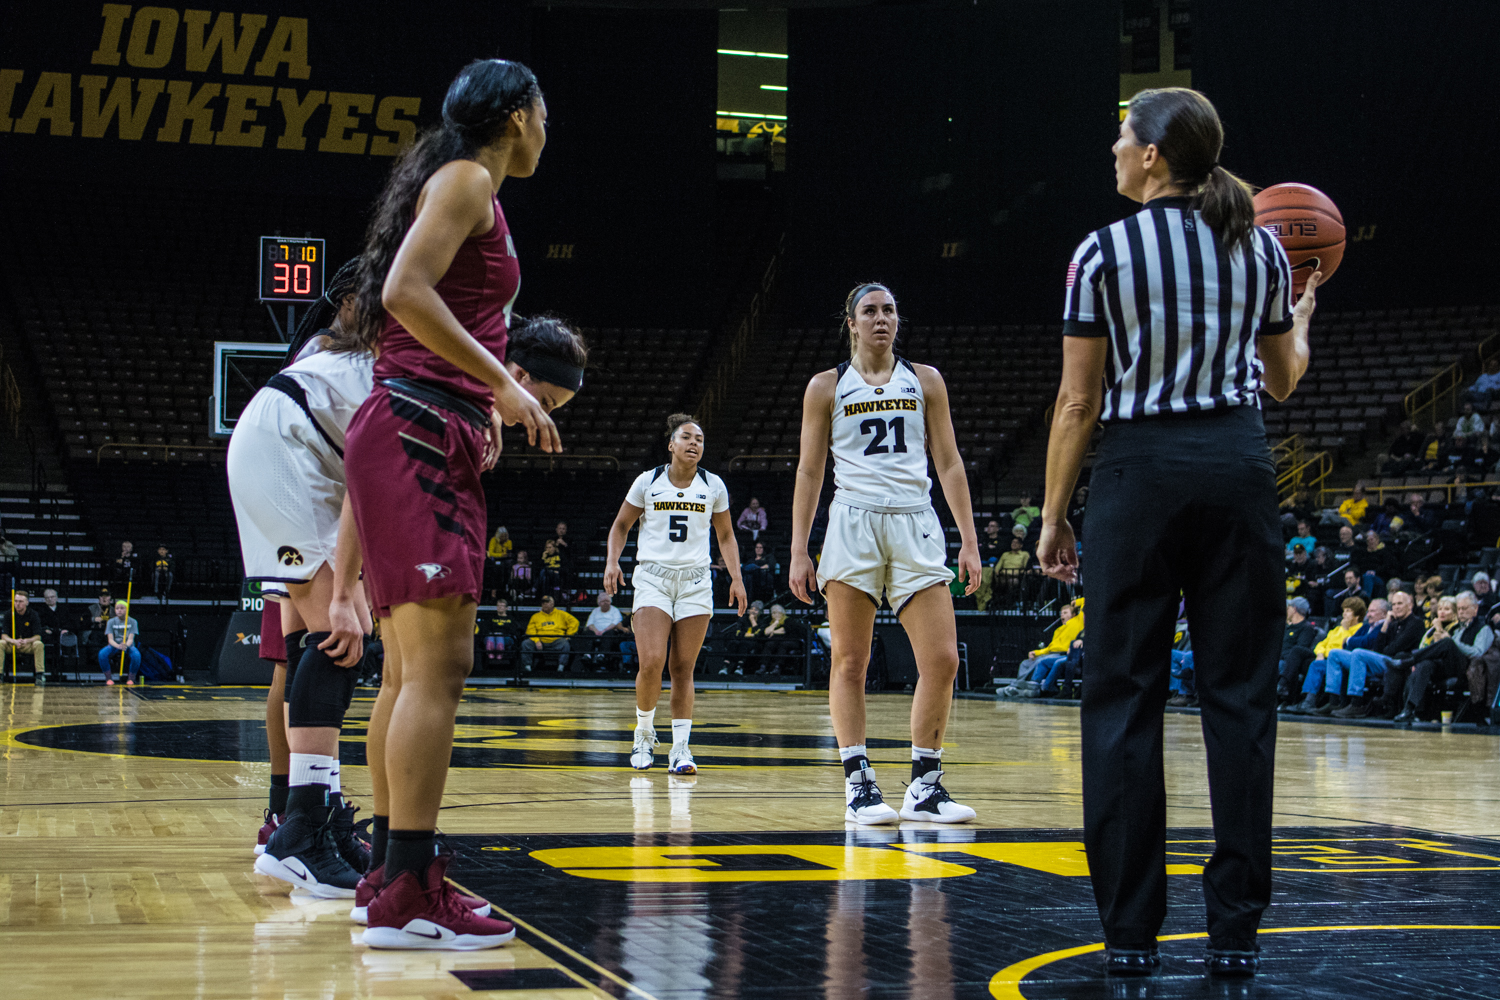 Iowa+forward+Hannah+Stewart+prepares+for+a+free+throw+during+a+women%27s+basketball+game+between+Iowa+and+North+Carolina+Central+at+Carver-Hawkeye+Arena+on+Saturday%2C+Nov.+17%2C+2018.+The+Hawkeyes+devastated+the+visiting+Eagles%2C+106-39.+